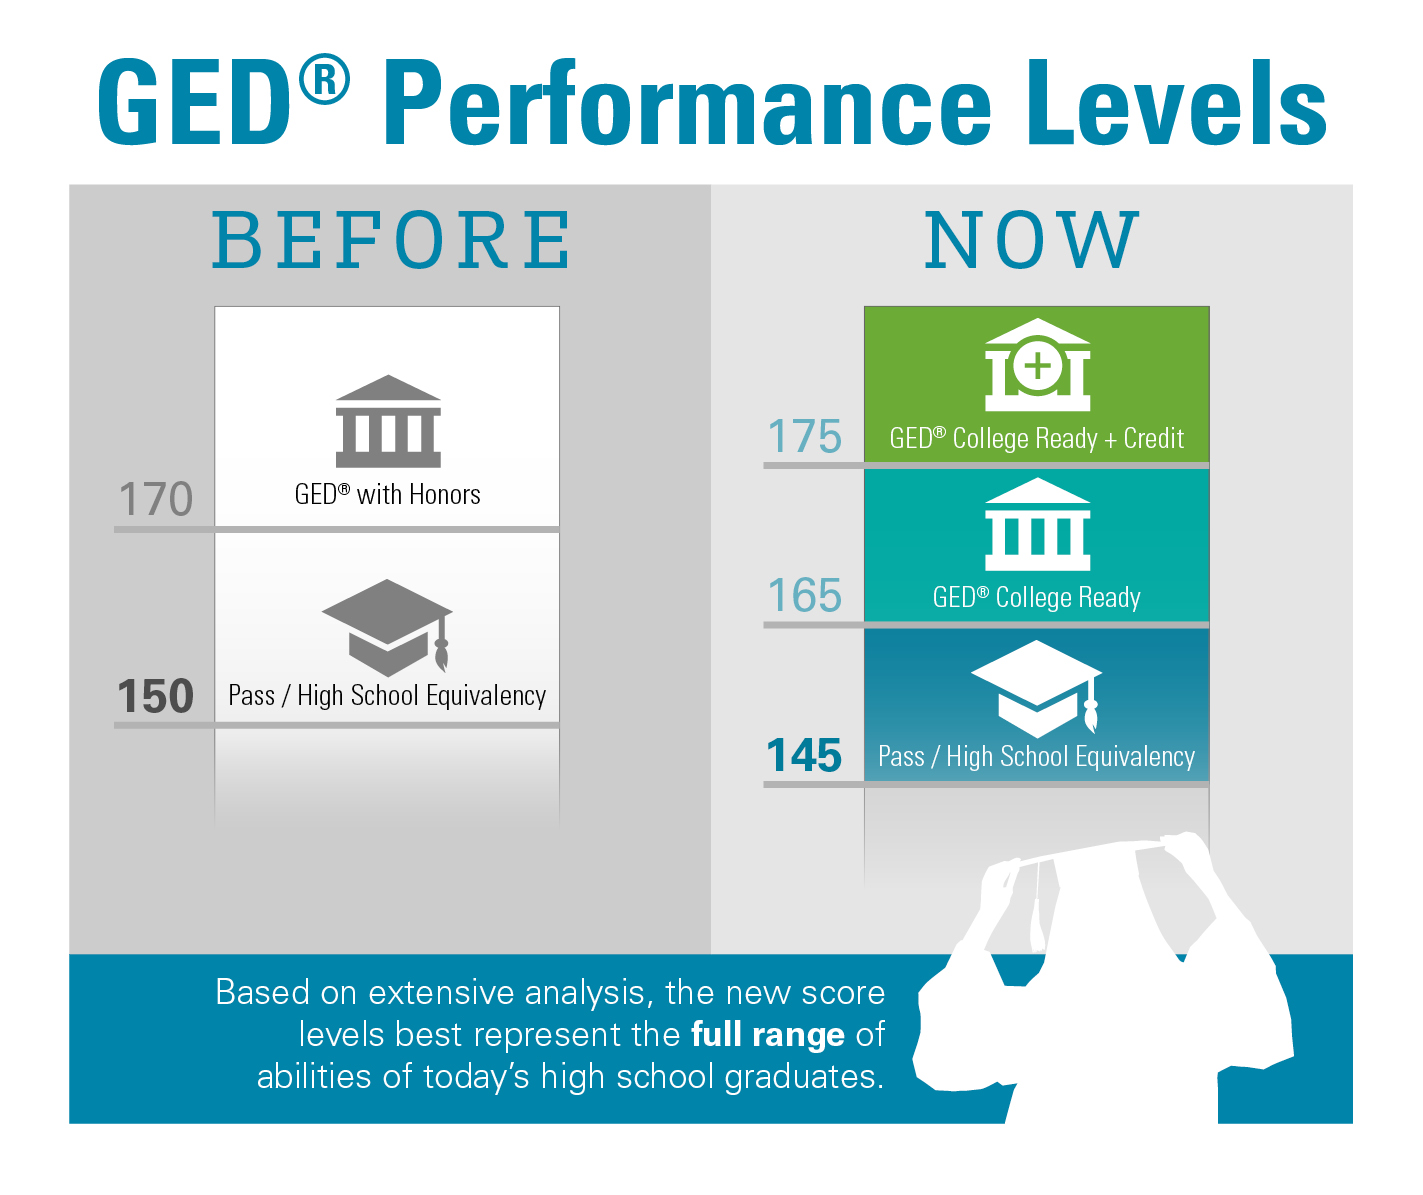 GED Test Score/Performance Level Enhancements | LINCS